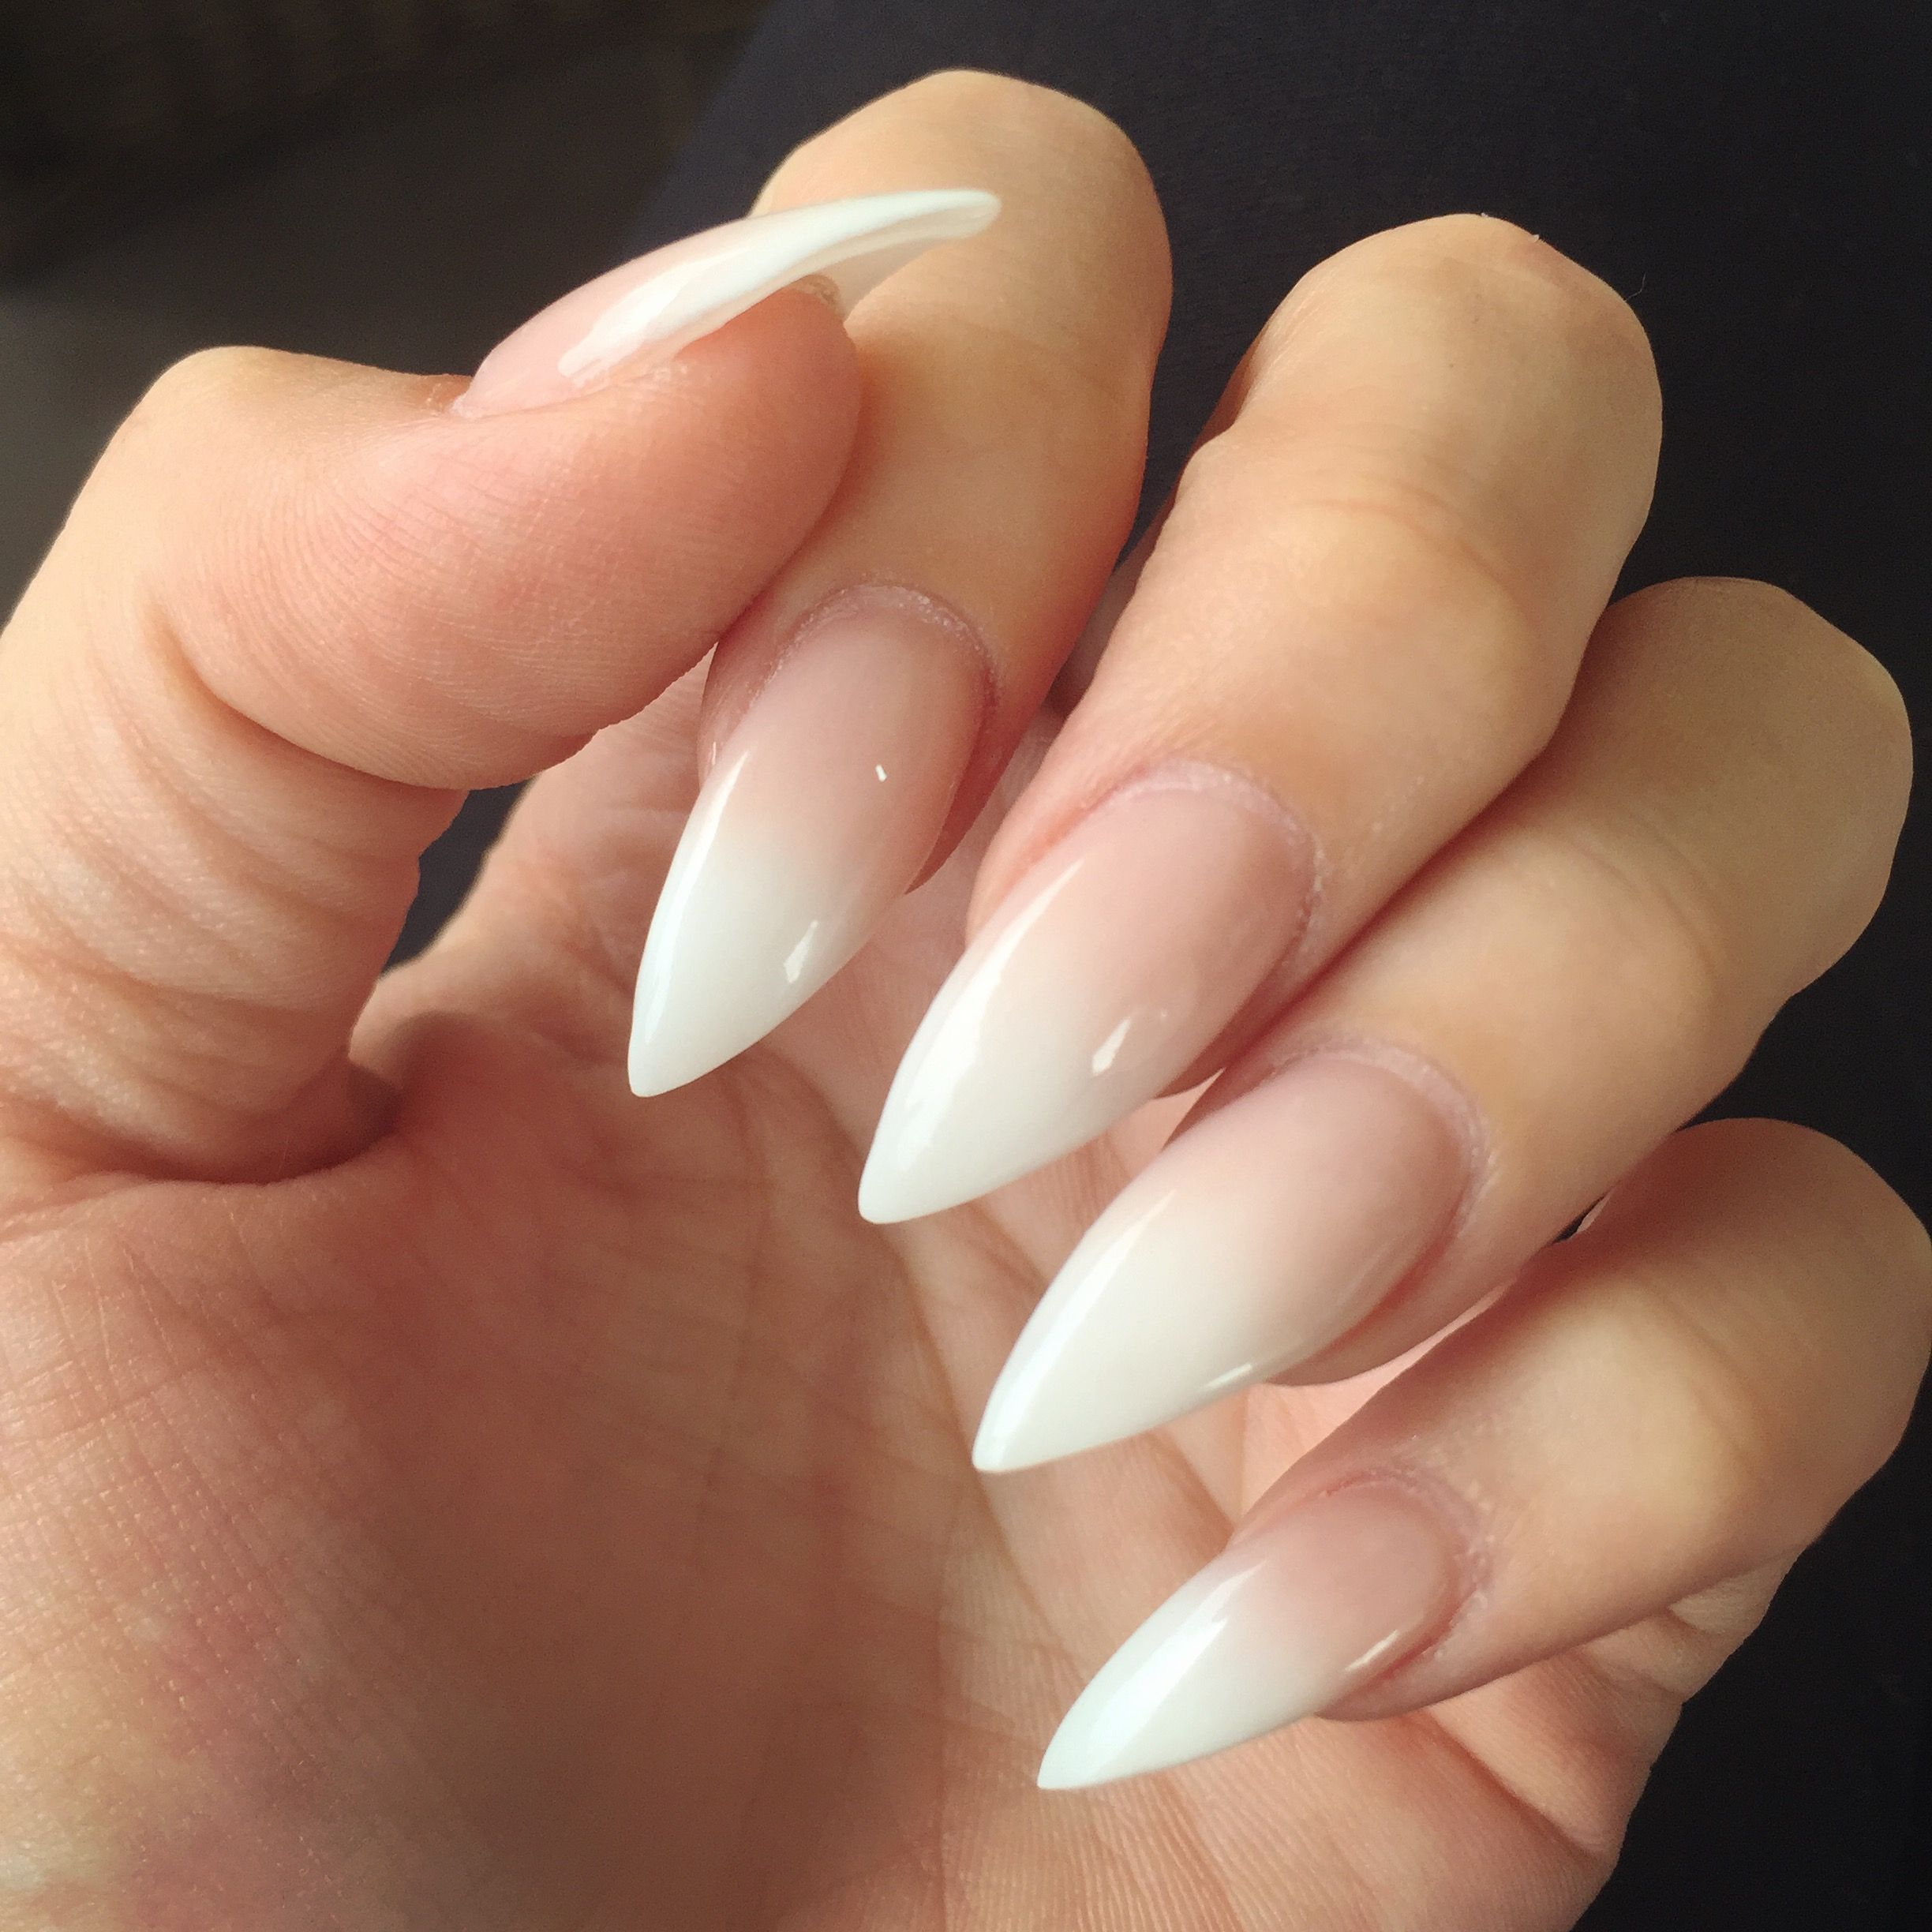 Ombre French Stiletto Nails More Luxury Beauty Winter Nails Http Amzn To 2lfafj4 Design Nehtu Gelove Nehty Nehty